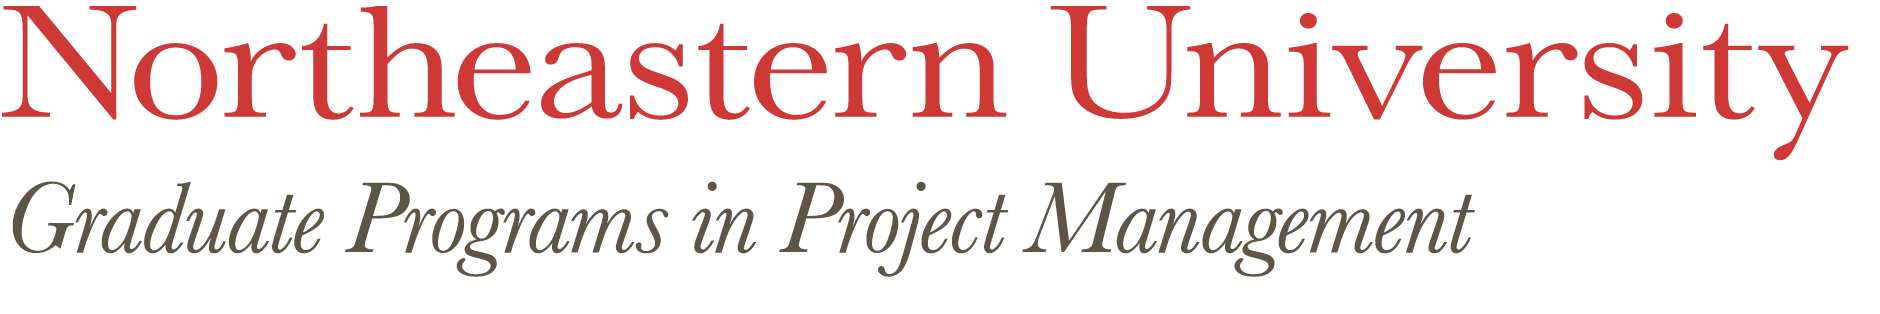 Northeastern Univ Grad Programs in PM.png